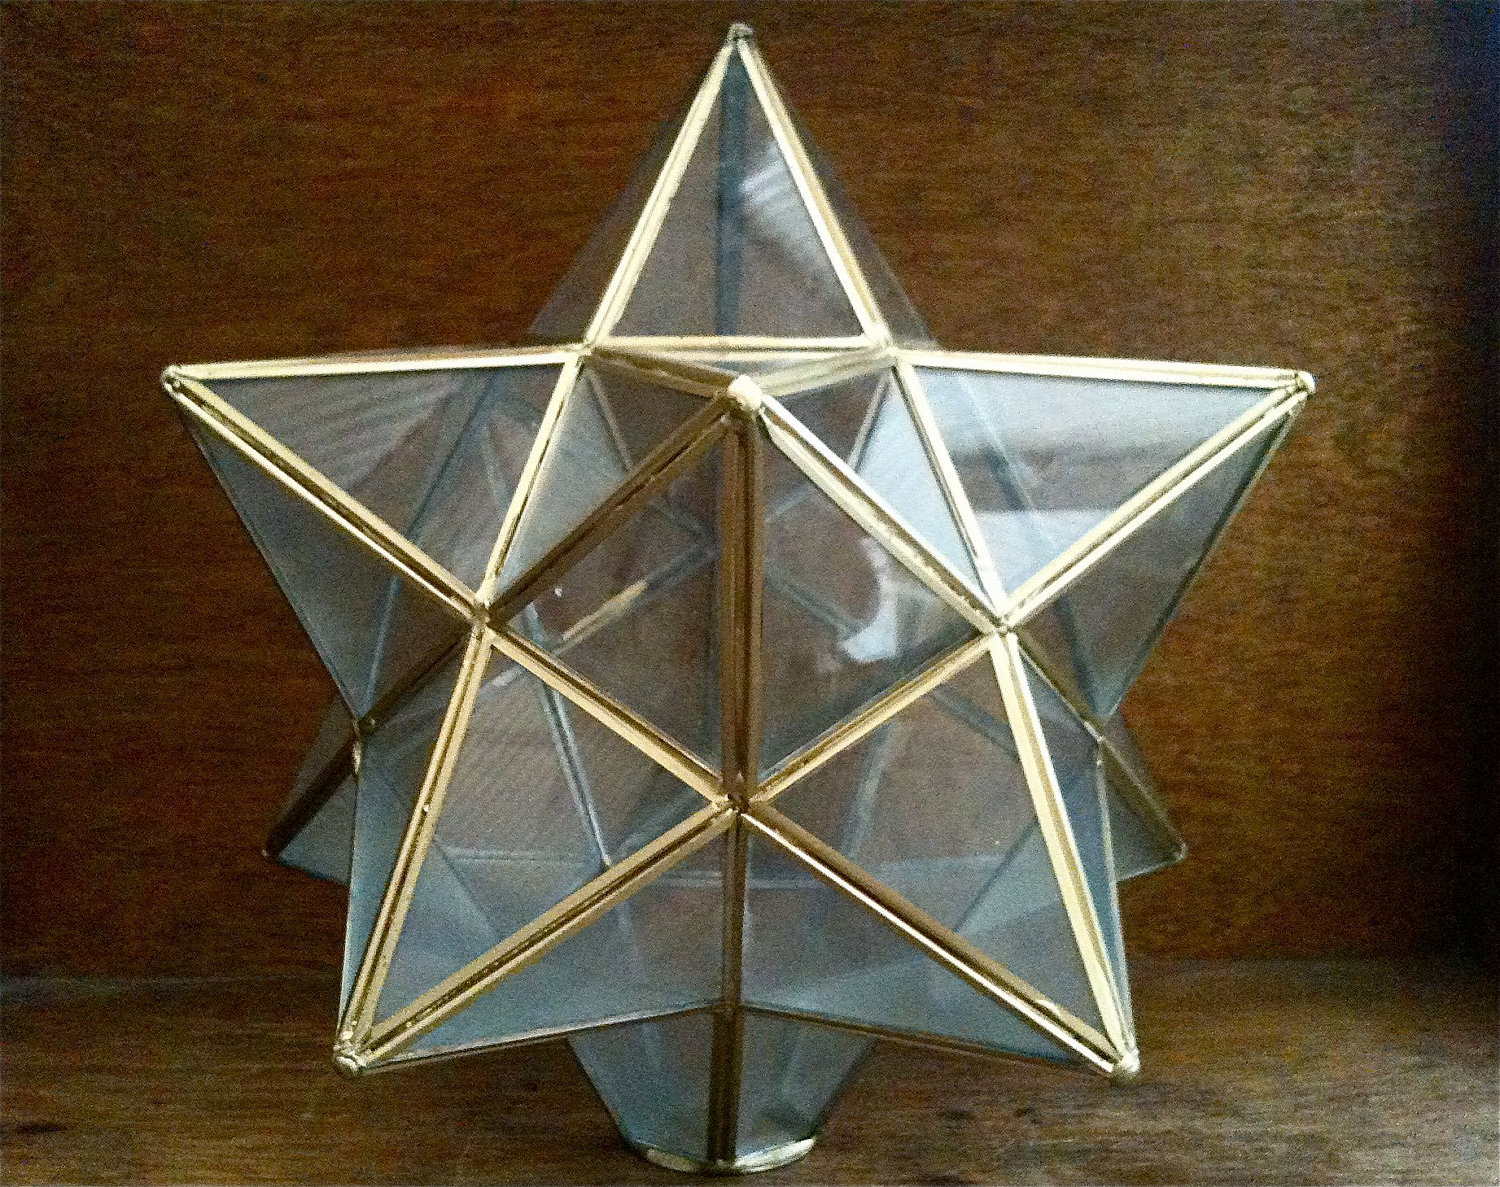 vintage glass star shape lamp shade in brass english shop. Black Bedroom Furniture Sets. Home Design Ideas